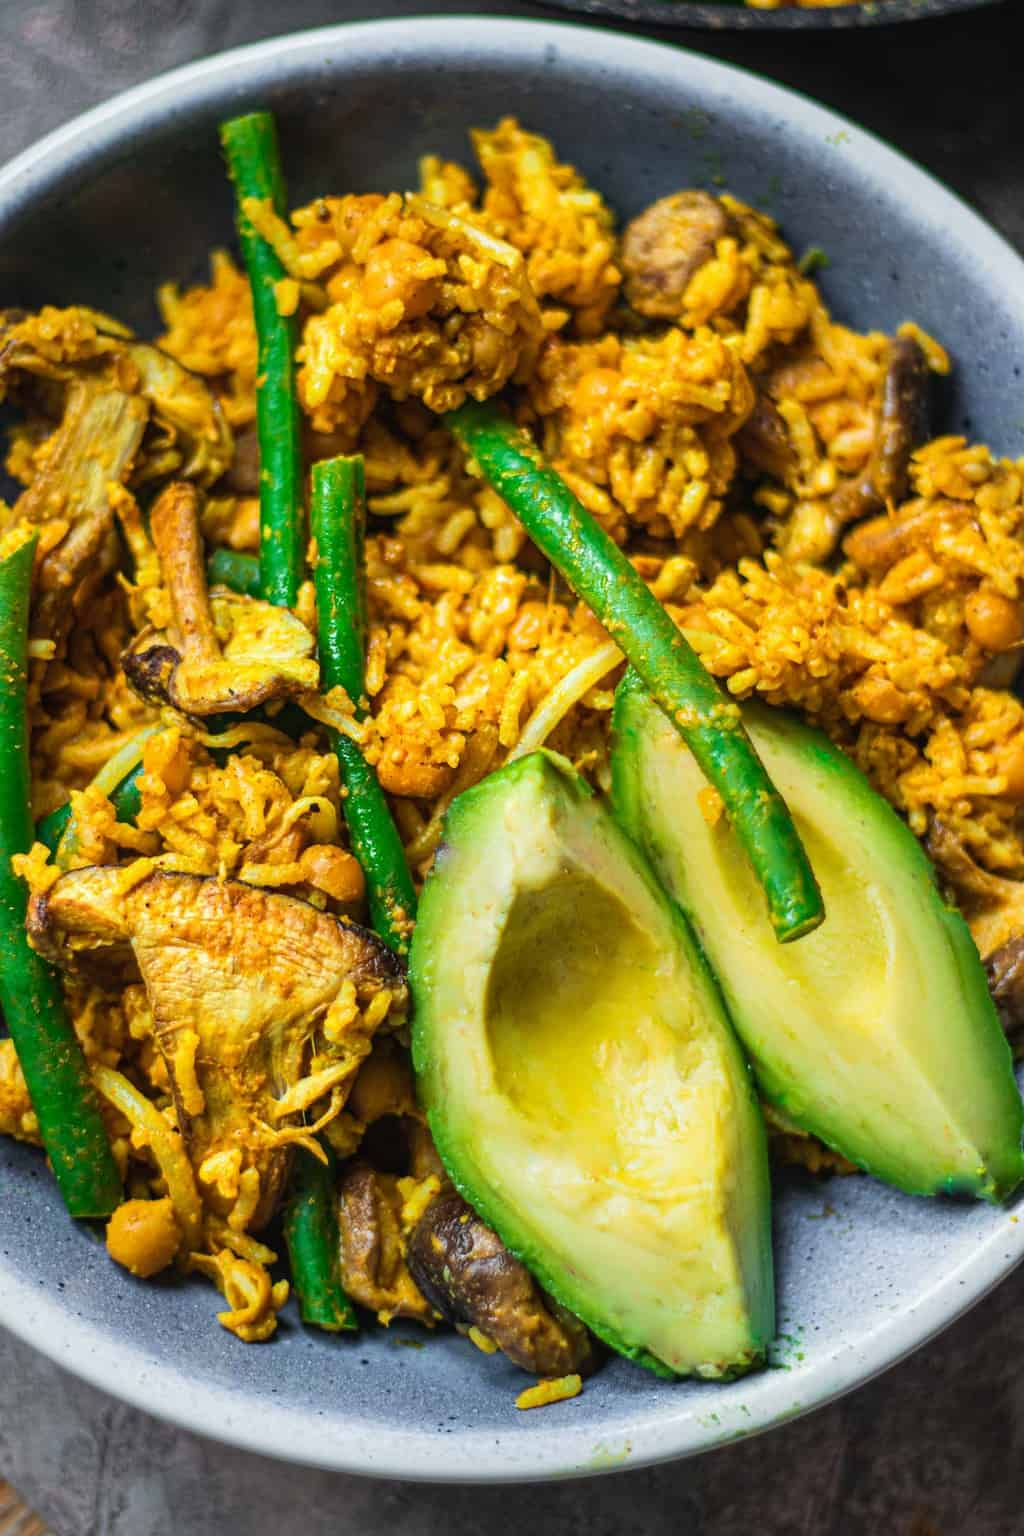 Bowl with chickpea rice and avocado